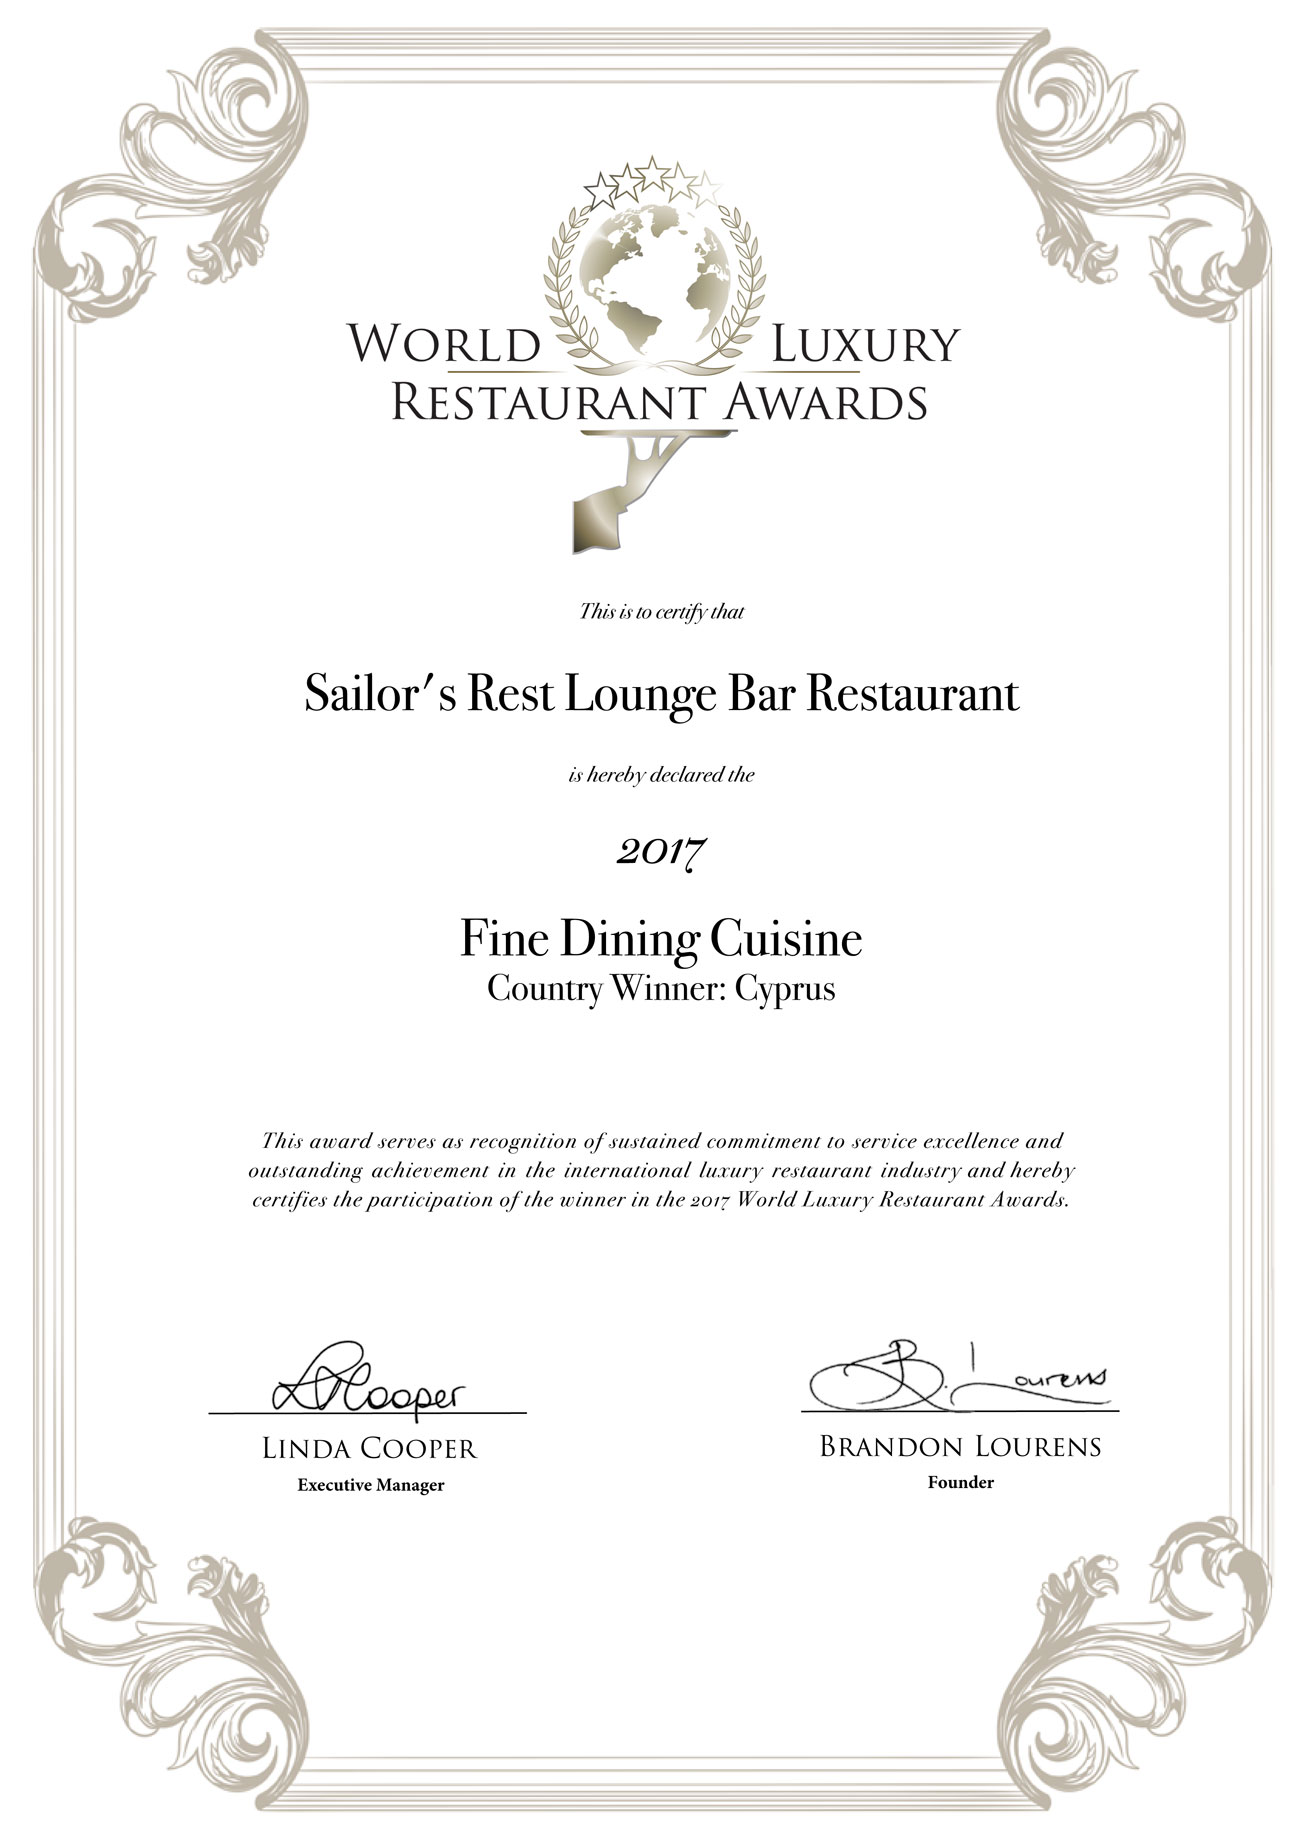 Sailor's Rest Lounge Bar Restaurant - World Luxury Restaurant Awards